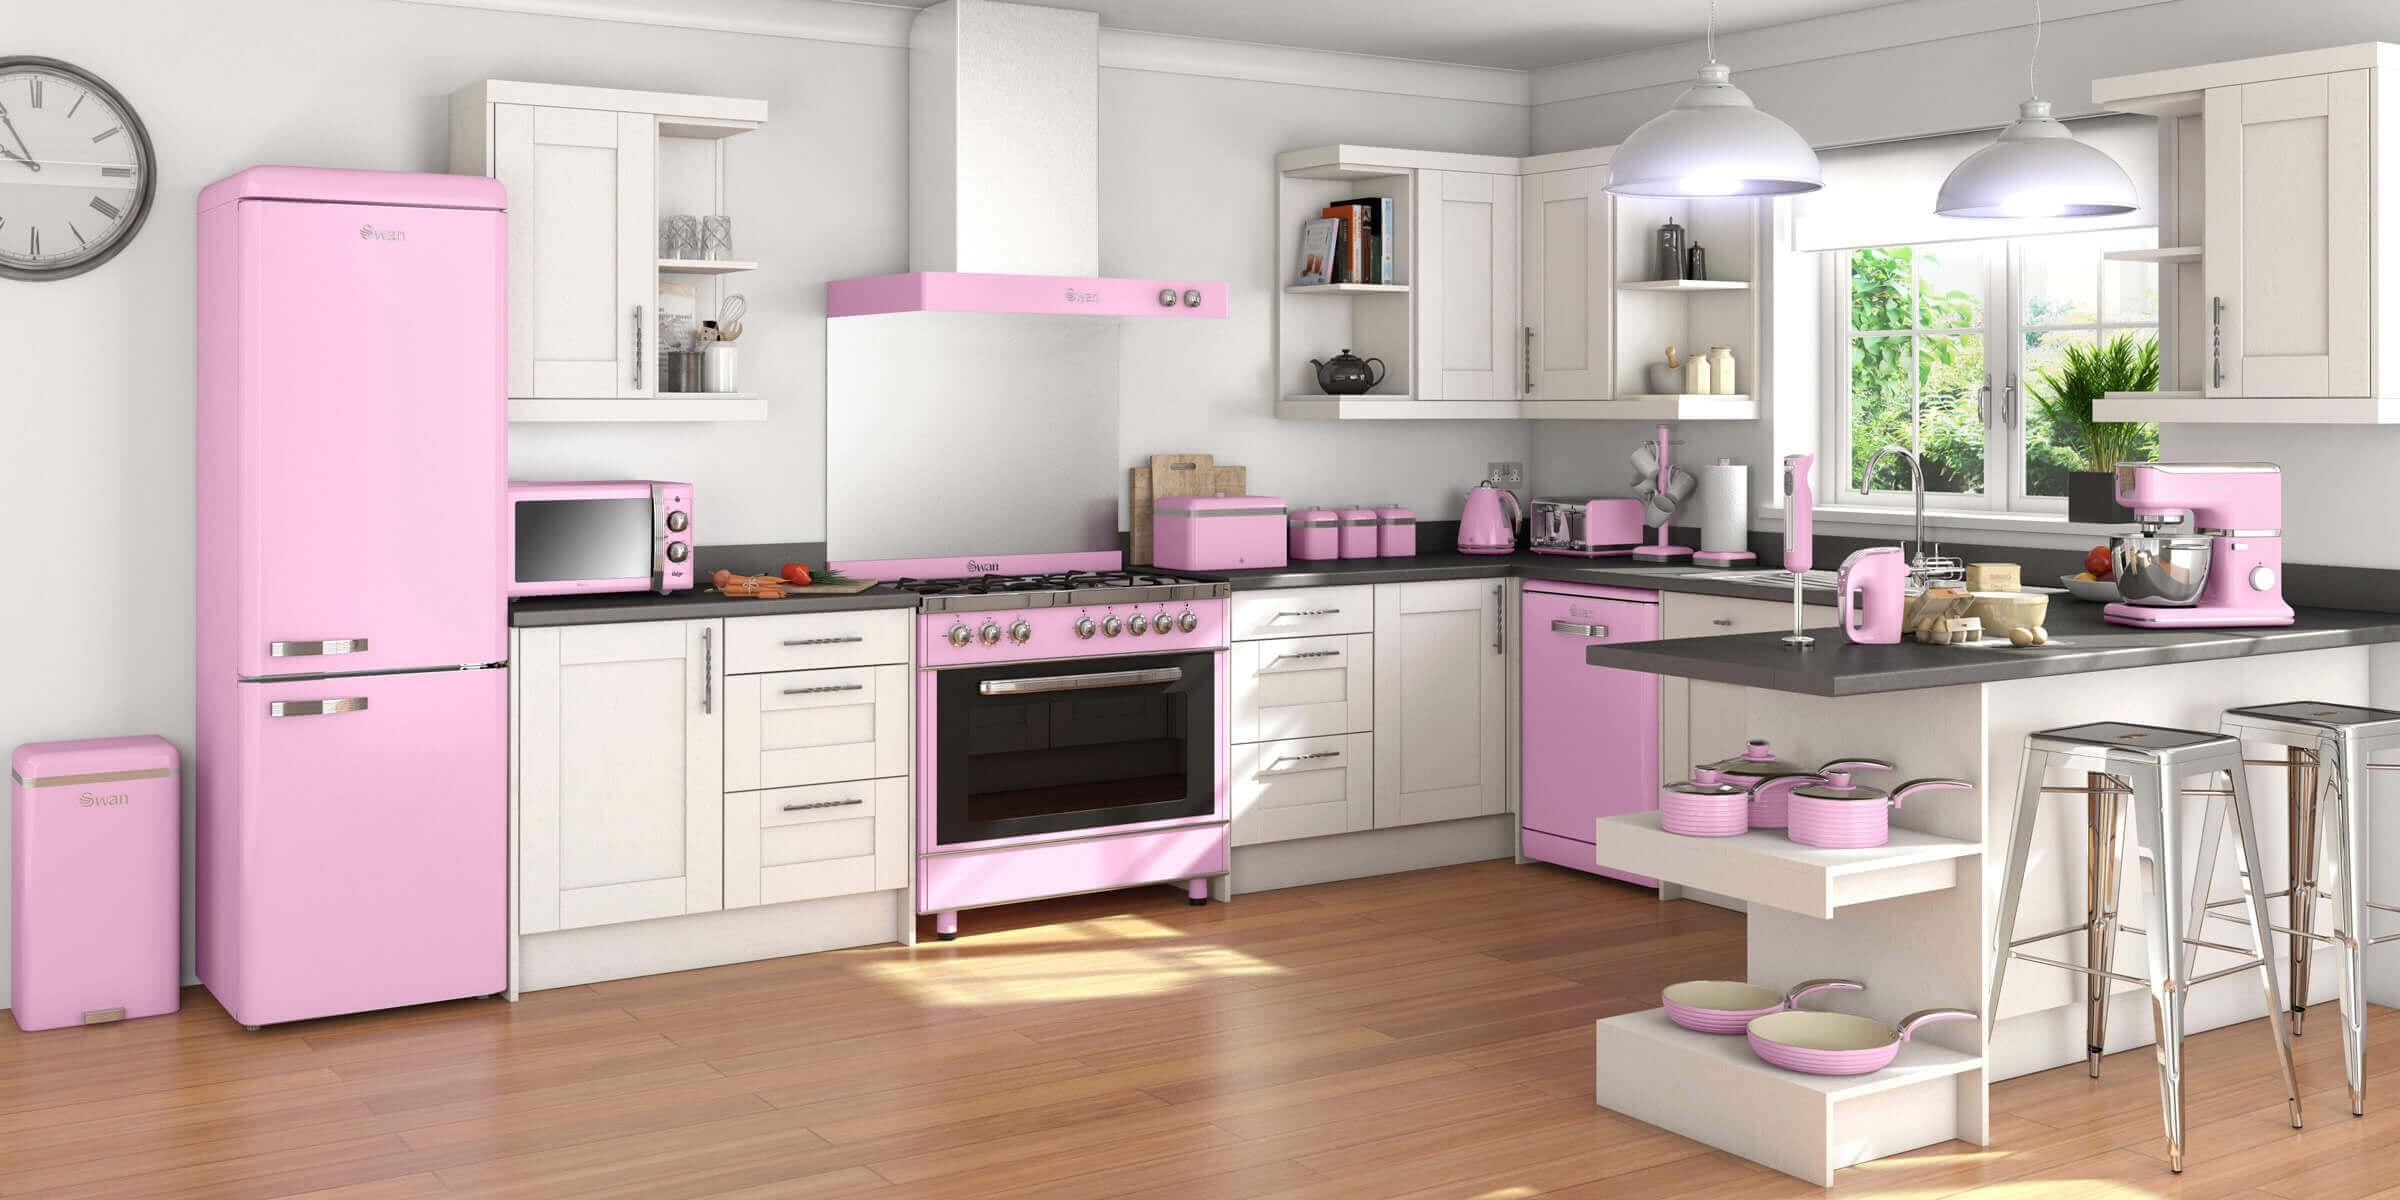 Pastel Pink Kitchen Accessories Swan Fearne Mixers And Blenders Retro Appliances Ao